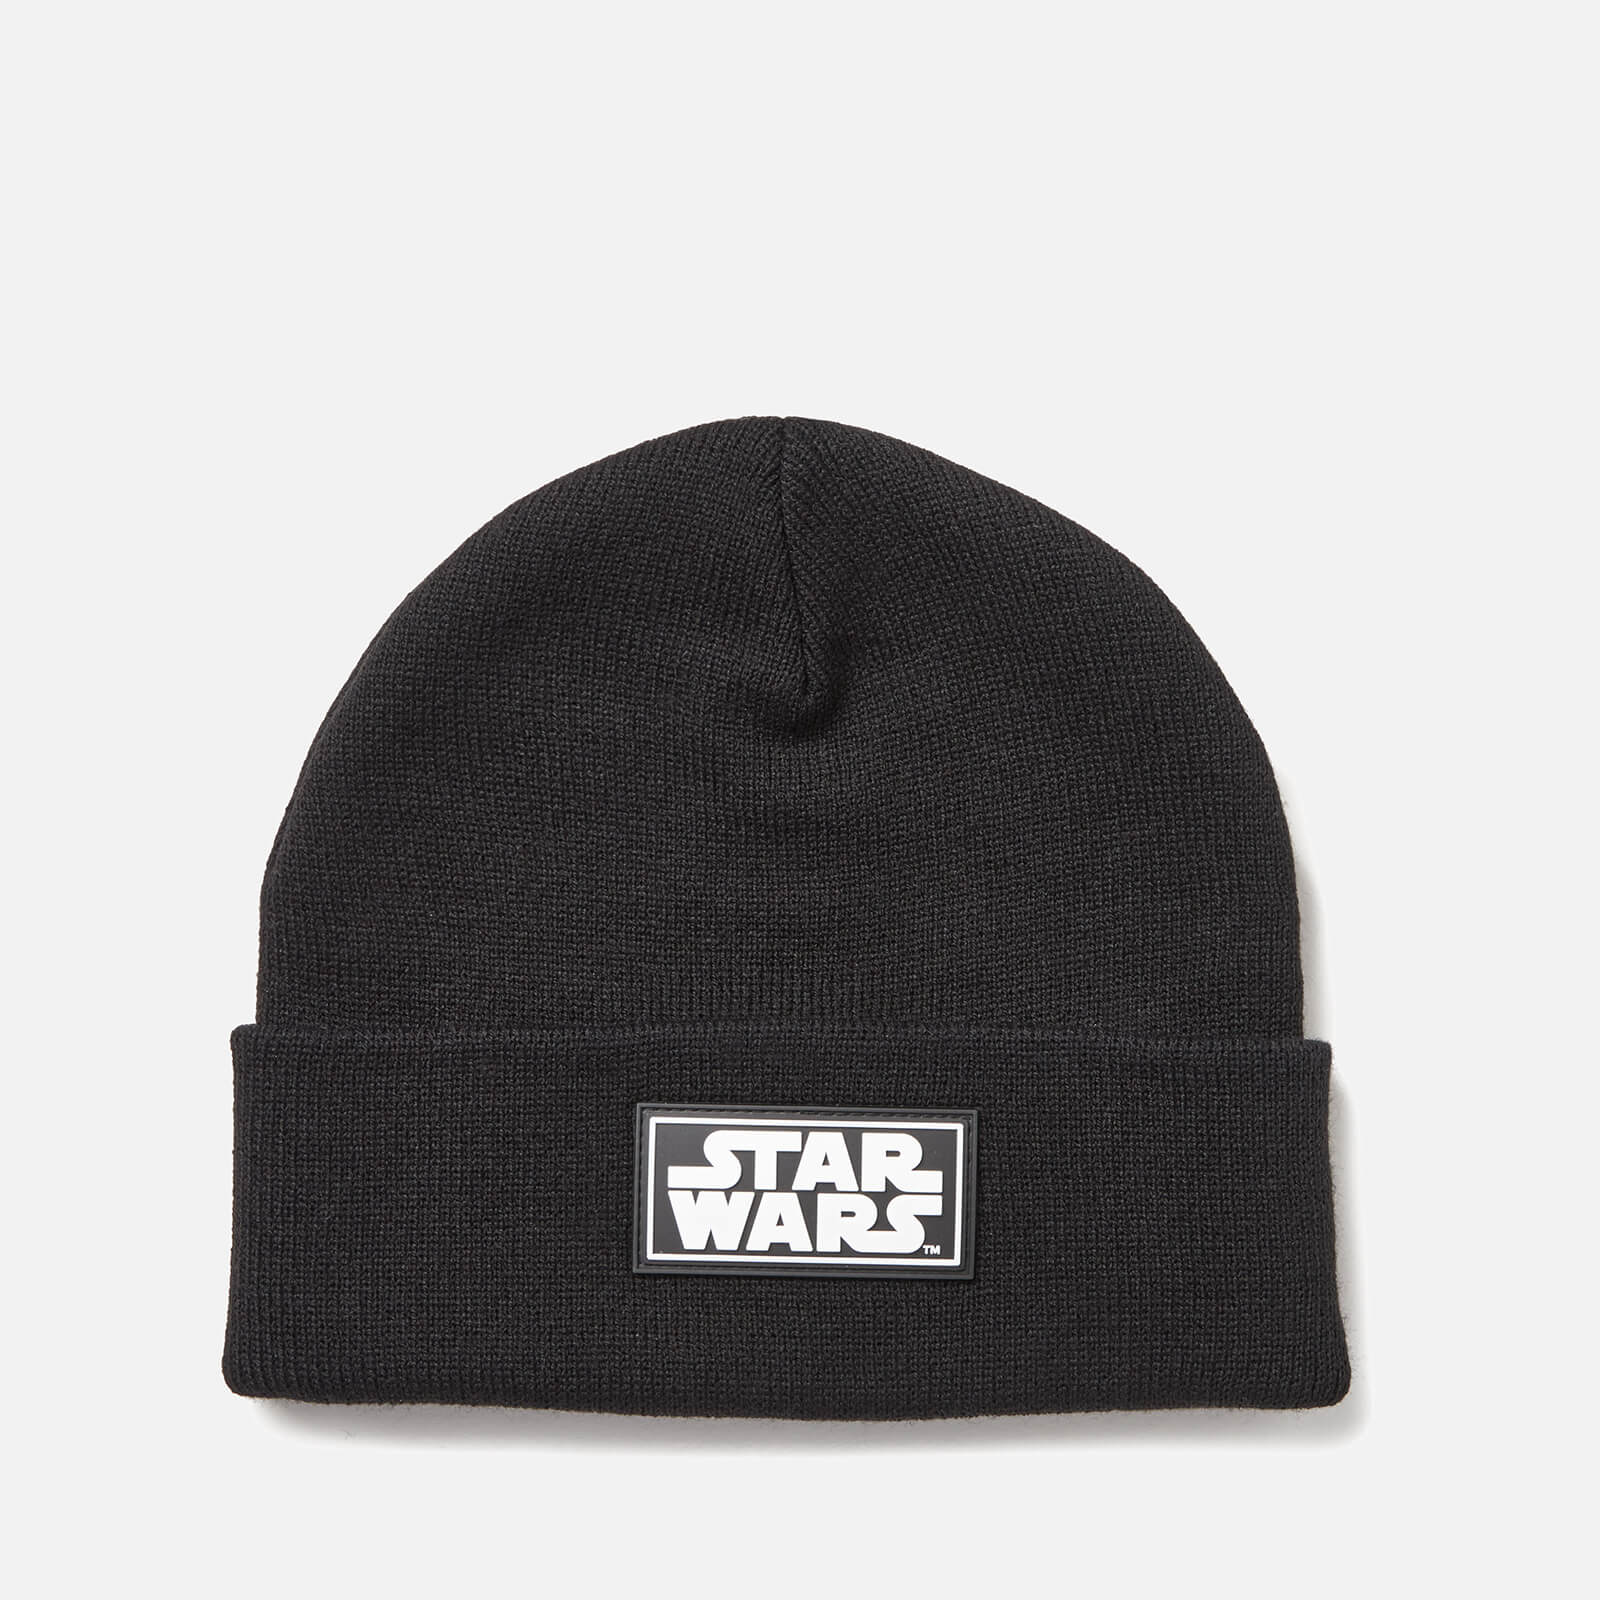 Star Wars Beanie Hat - Black